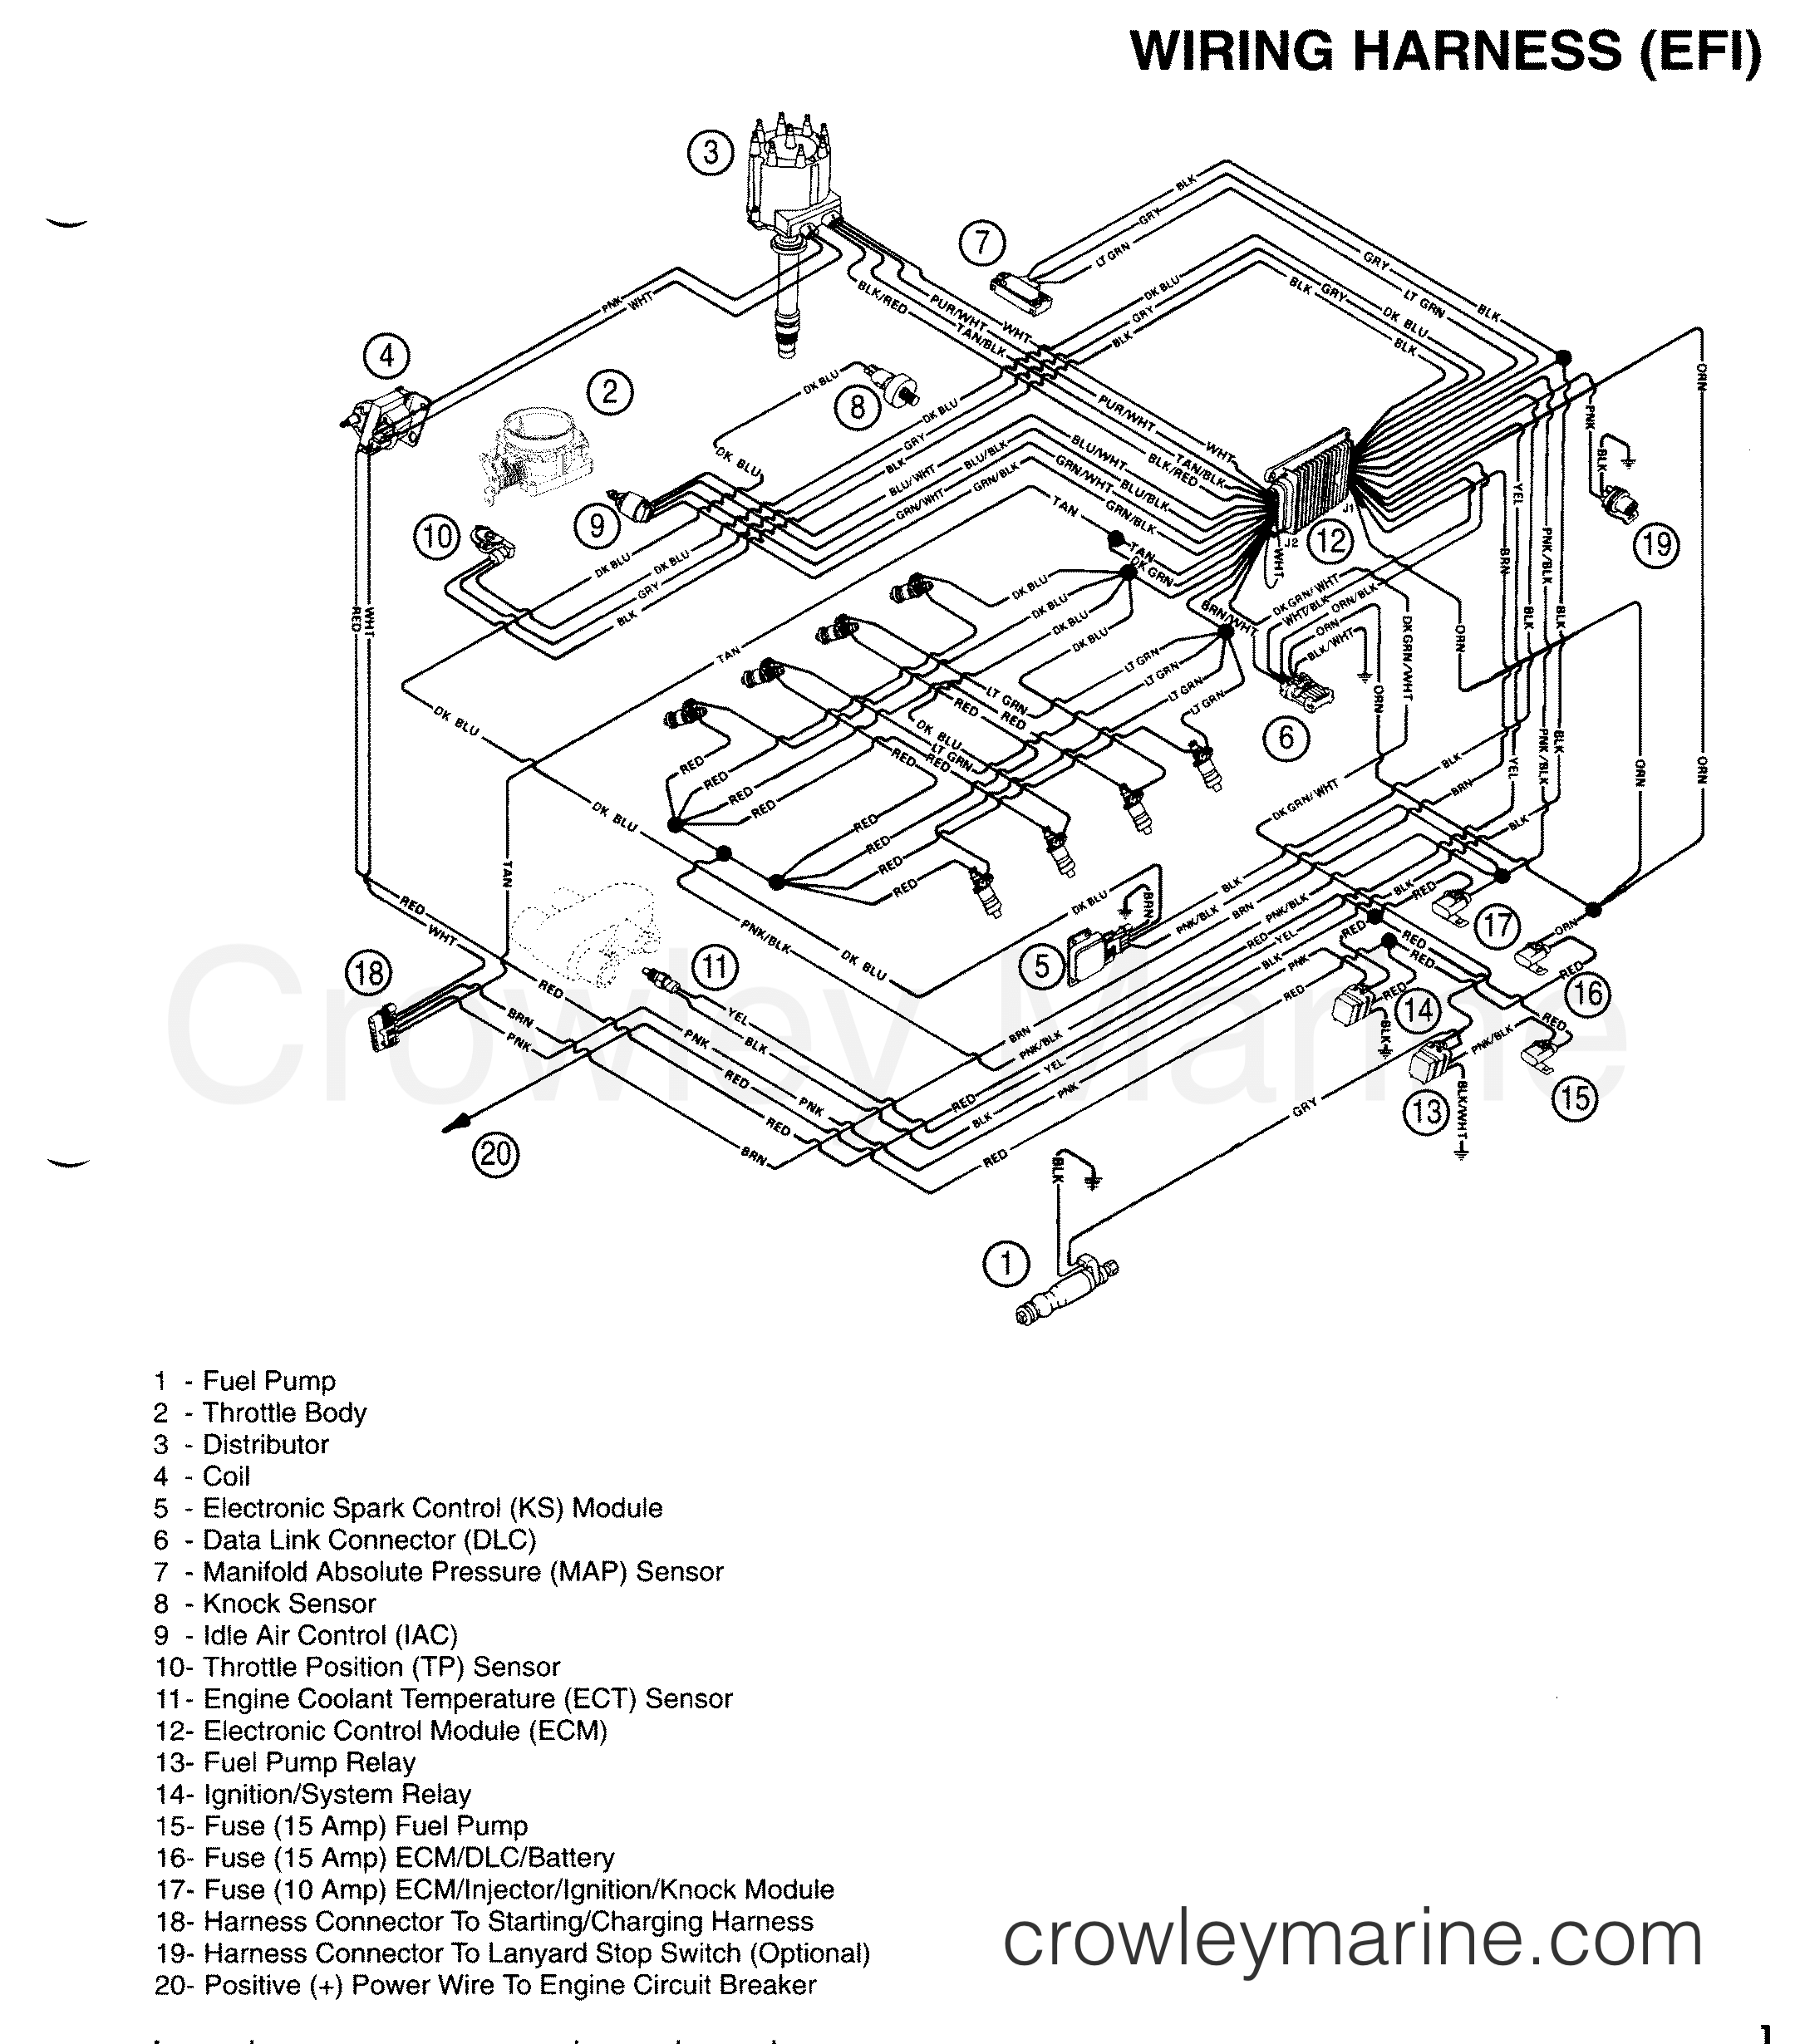 Wiring 350 Mag Engine Mercruiser Pictures Diagram Harness Efi Mercury Inboard Blk 2160x2460